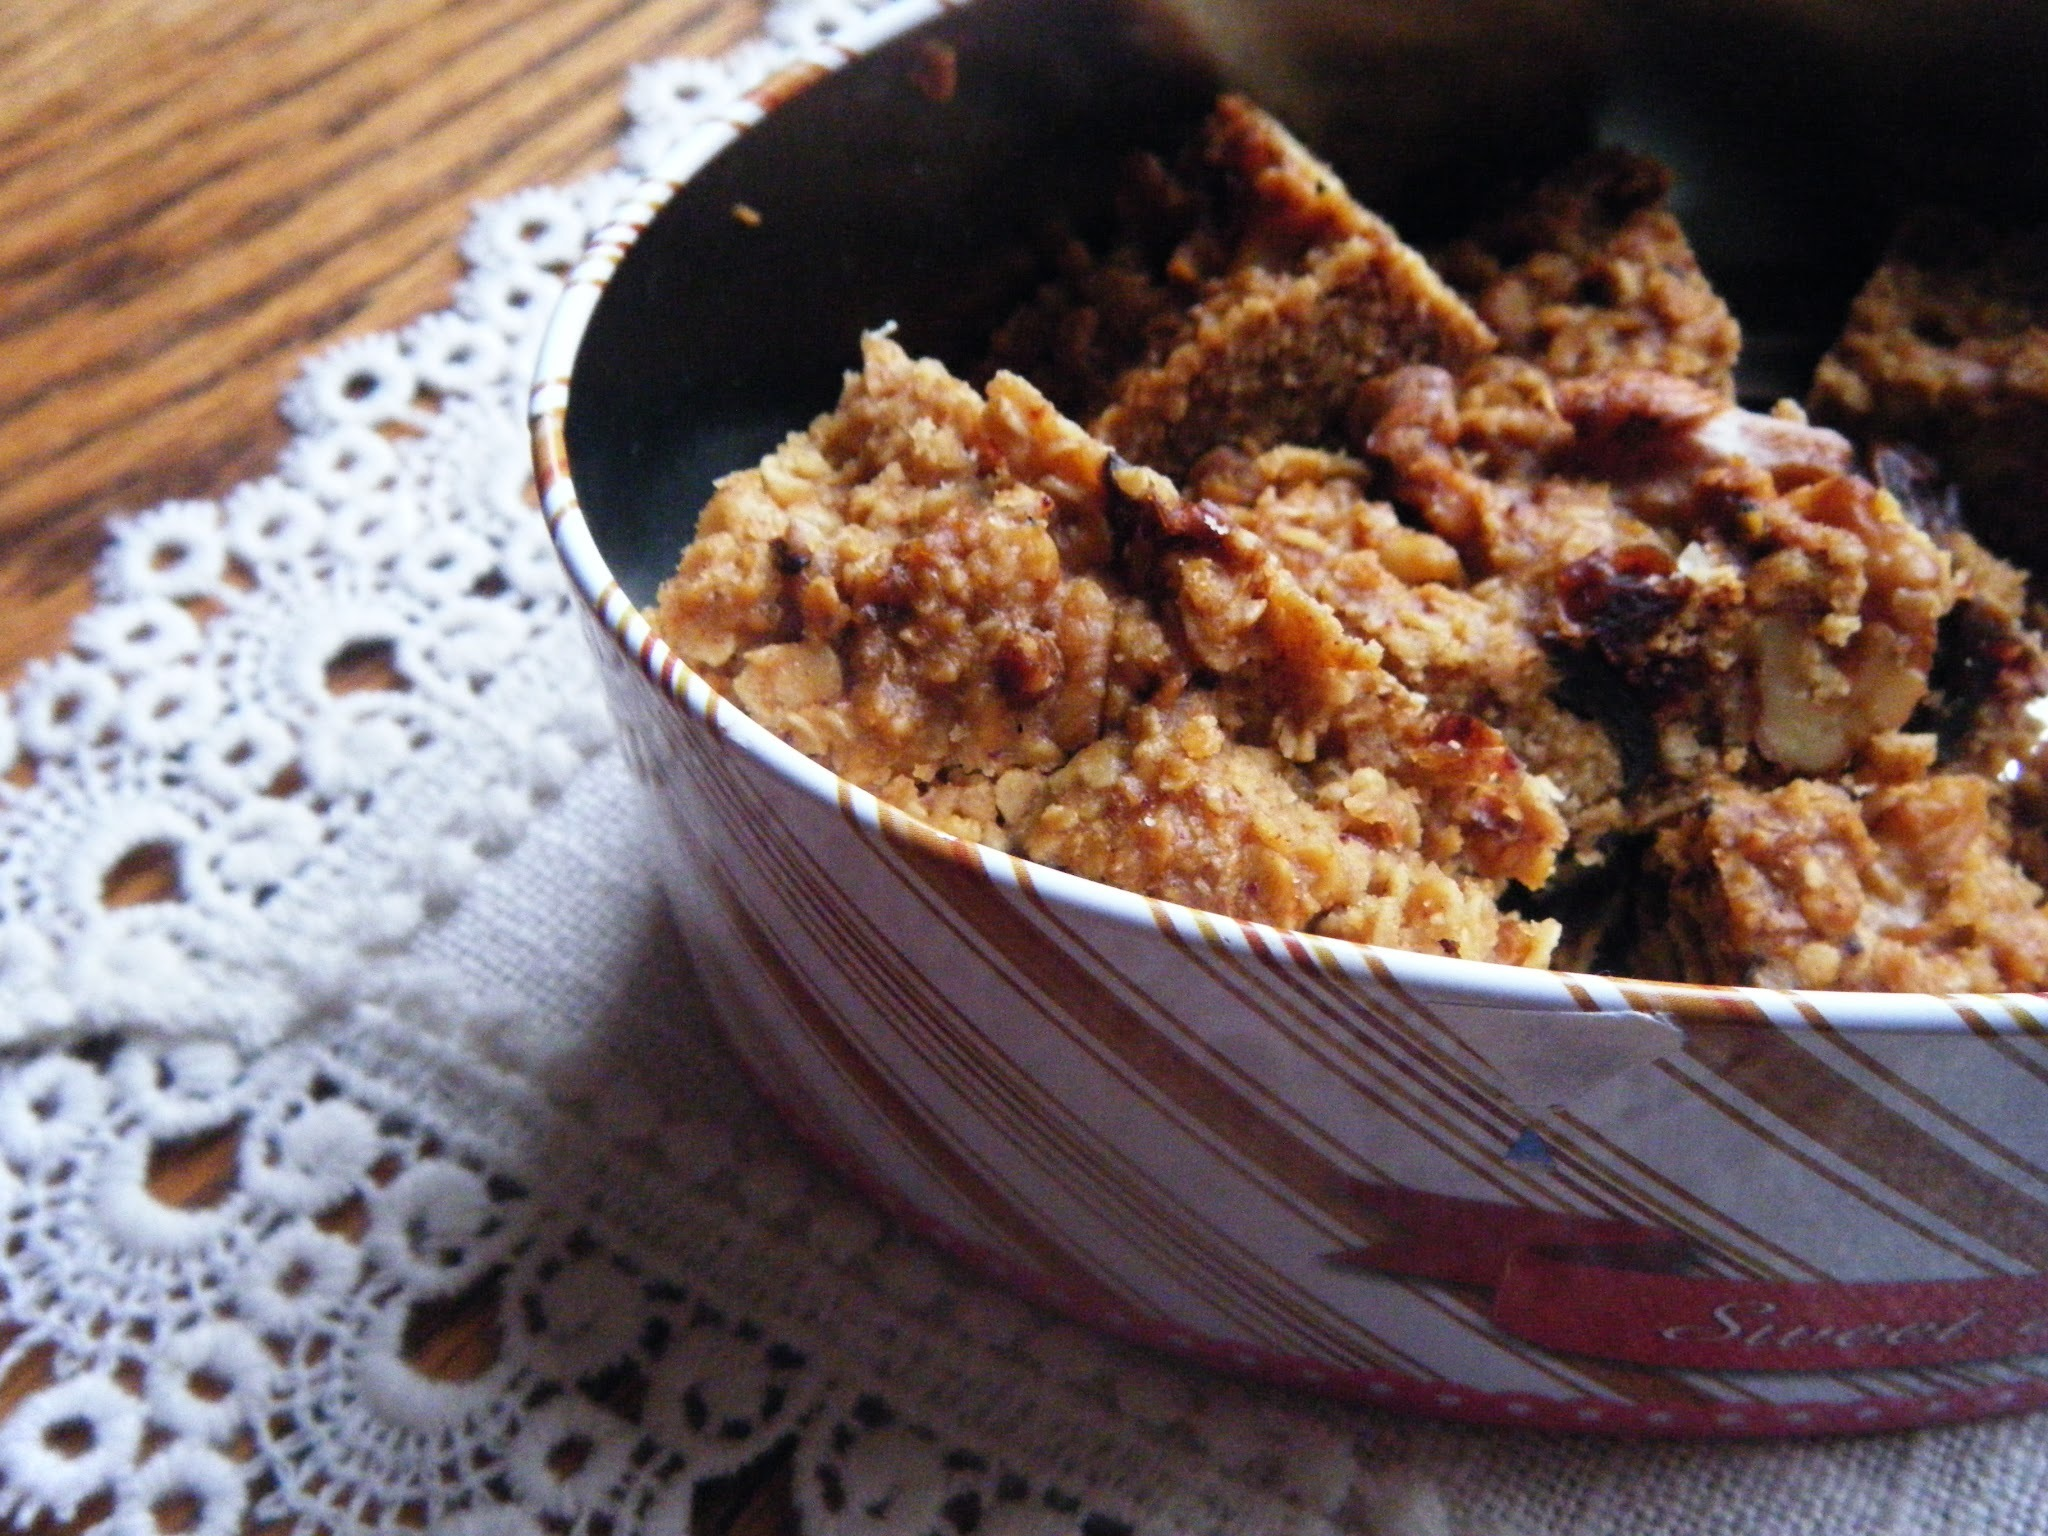 Honey, date and walnut flapjacks, sugarfree